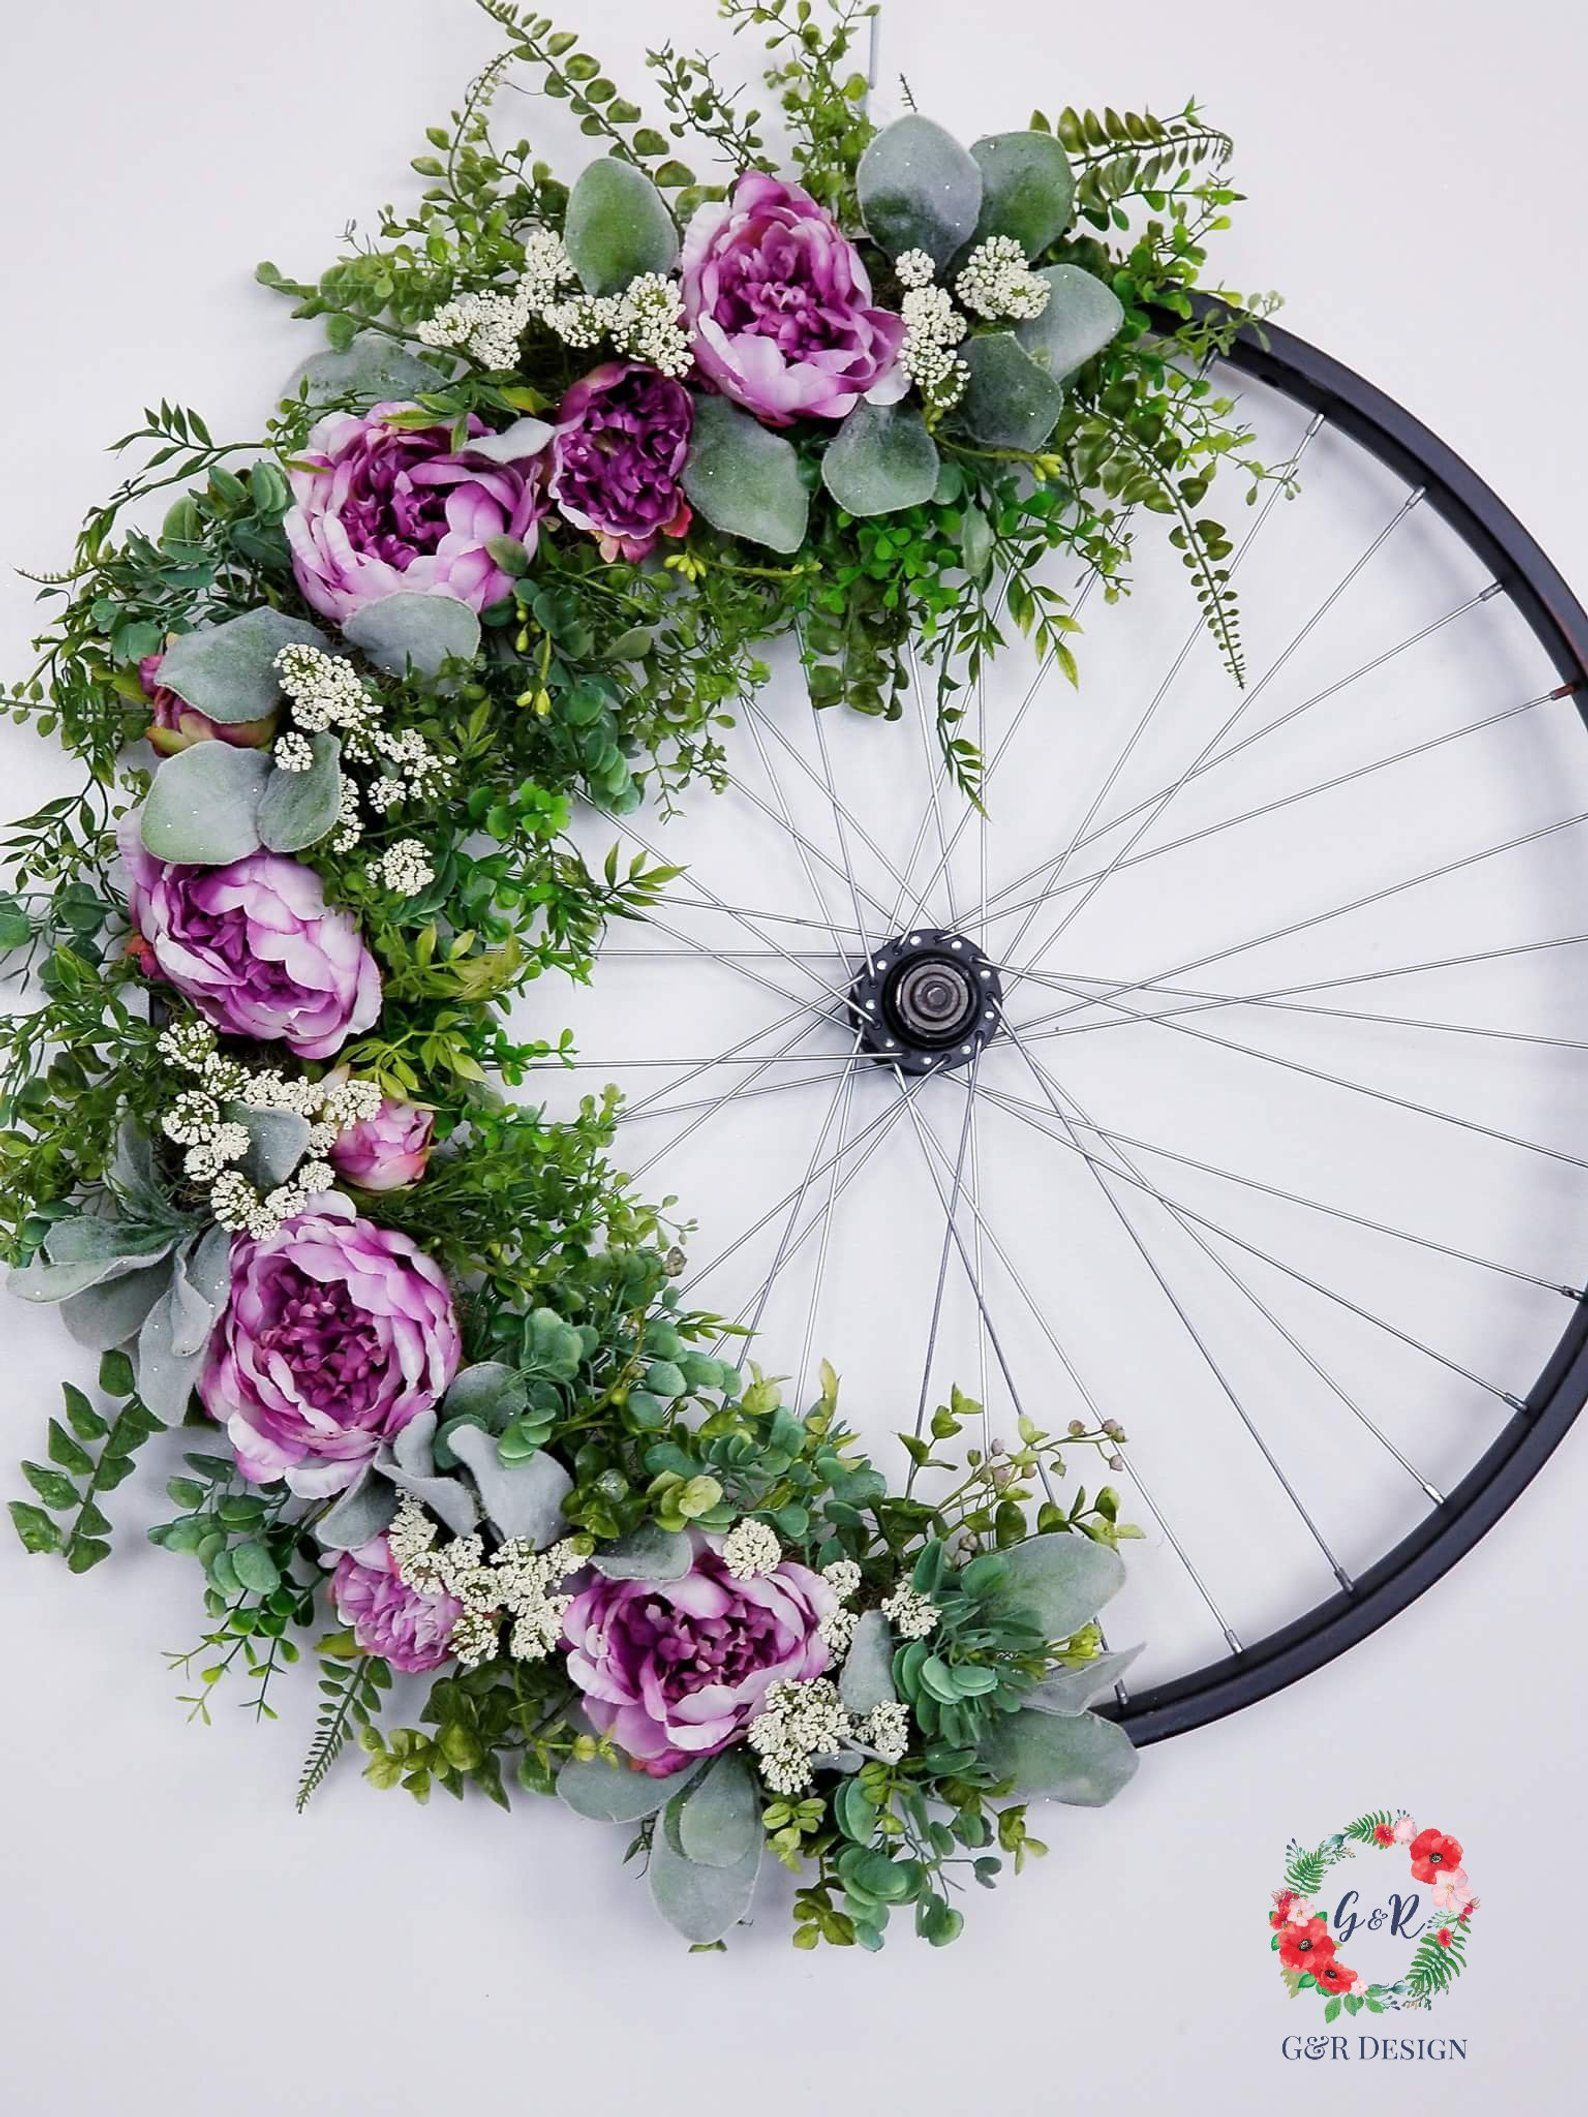 Photo of Bicycle Wheel Wreath Tutorial, Vintage Bicycle Wheel, Bike Rim Tutorial, Upcycled Wheel Wreath,  DIY Bike Wheel,  Bicycle Wheel Supply List